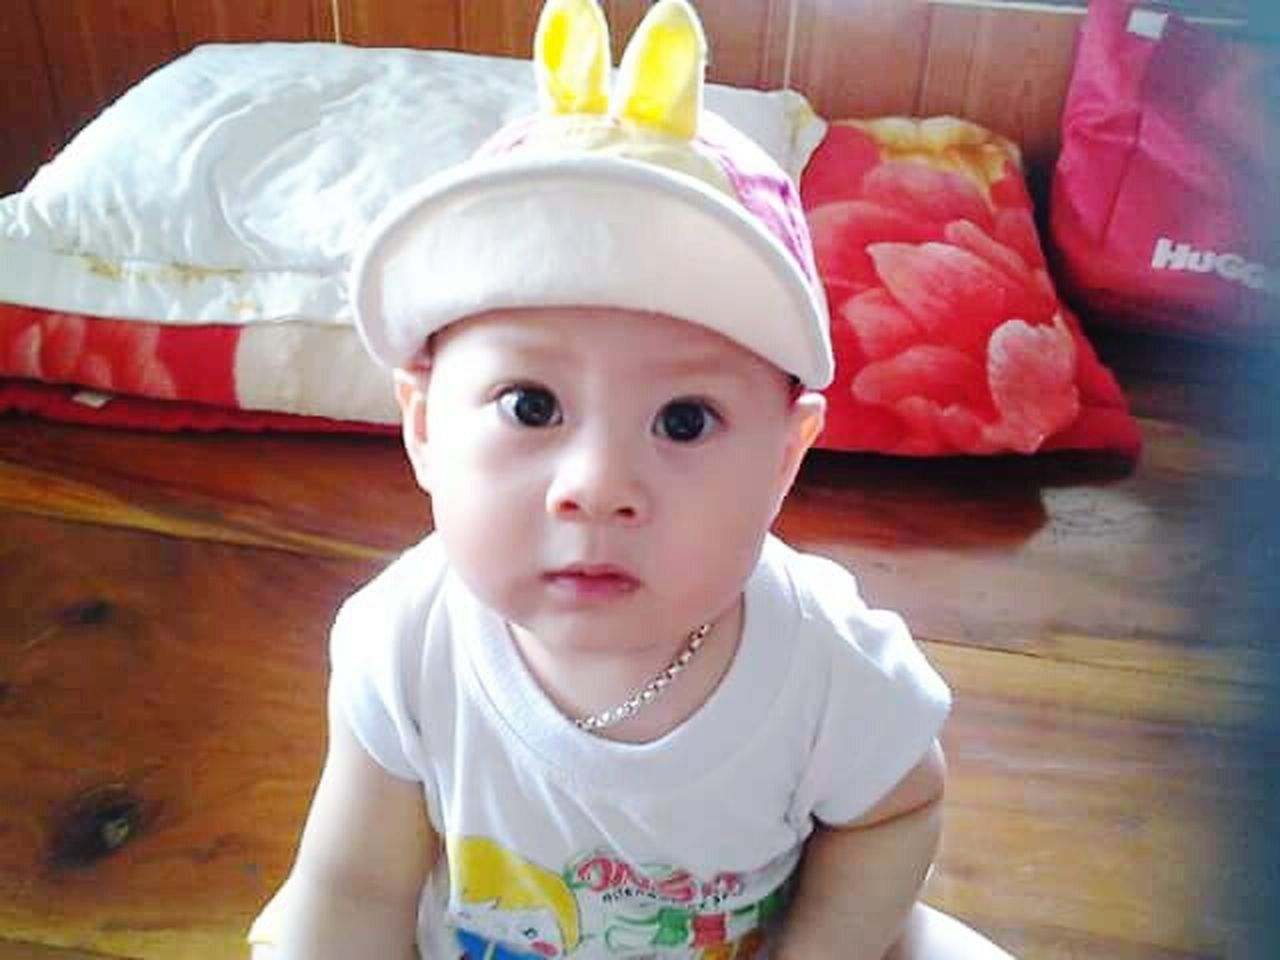 childhood, front view, innocence, looking at camera, portrait, crown, one person, indoors, cute, celebration, babies only, child, halloween, birthday, birthday cake, people, party - social event, happiness, chef's hat, day, tiara, close-up, king - royal person